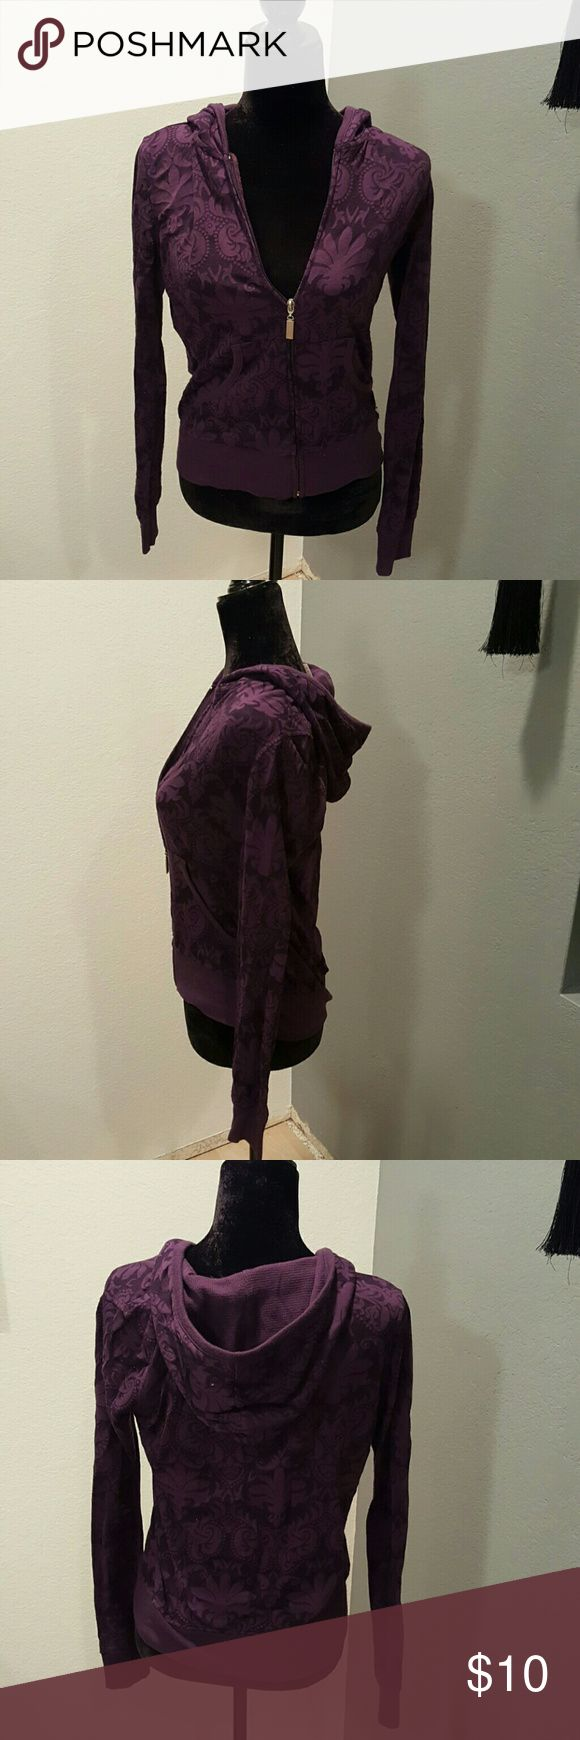 Purple Zip Up Hoodie- Size L This is a pre-loved, light weight hoodie in a great purple color. w 2 pockets, full zippered front,  hood is a thermal lined. Jacket has nice floral pattern through out. Cotton/polyester blend. Great condition! Bundle it for discount 💕 Tops Sweatshirts & Hoodies